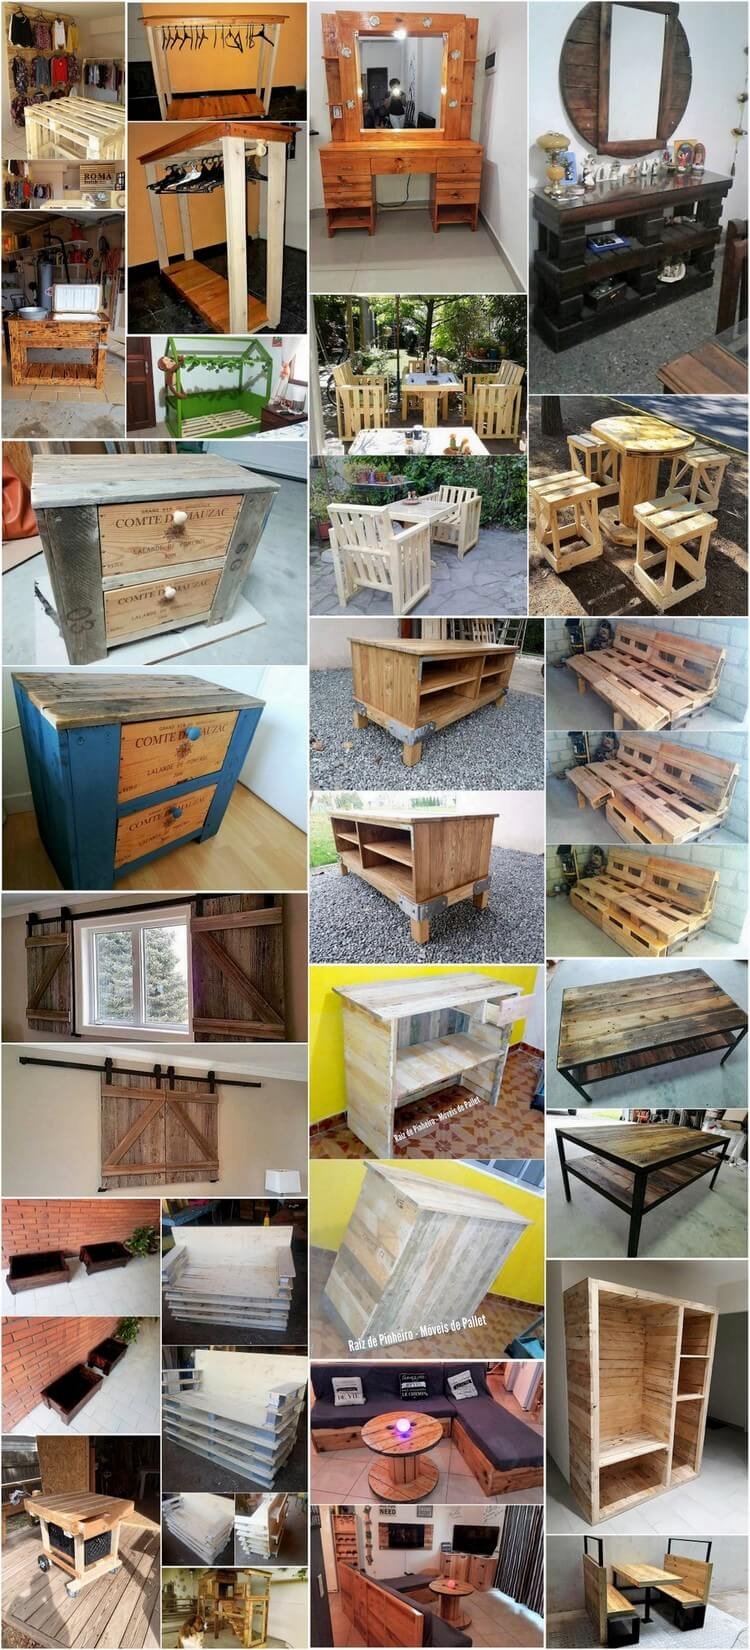 Incredible Shipping Wood Pallet Projects That will Inspire You